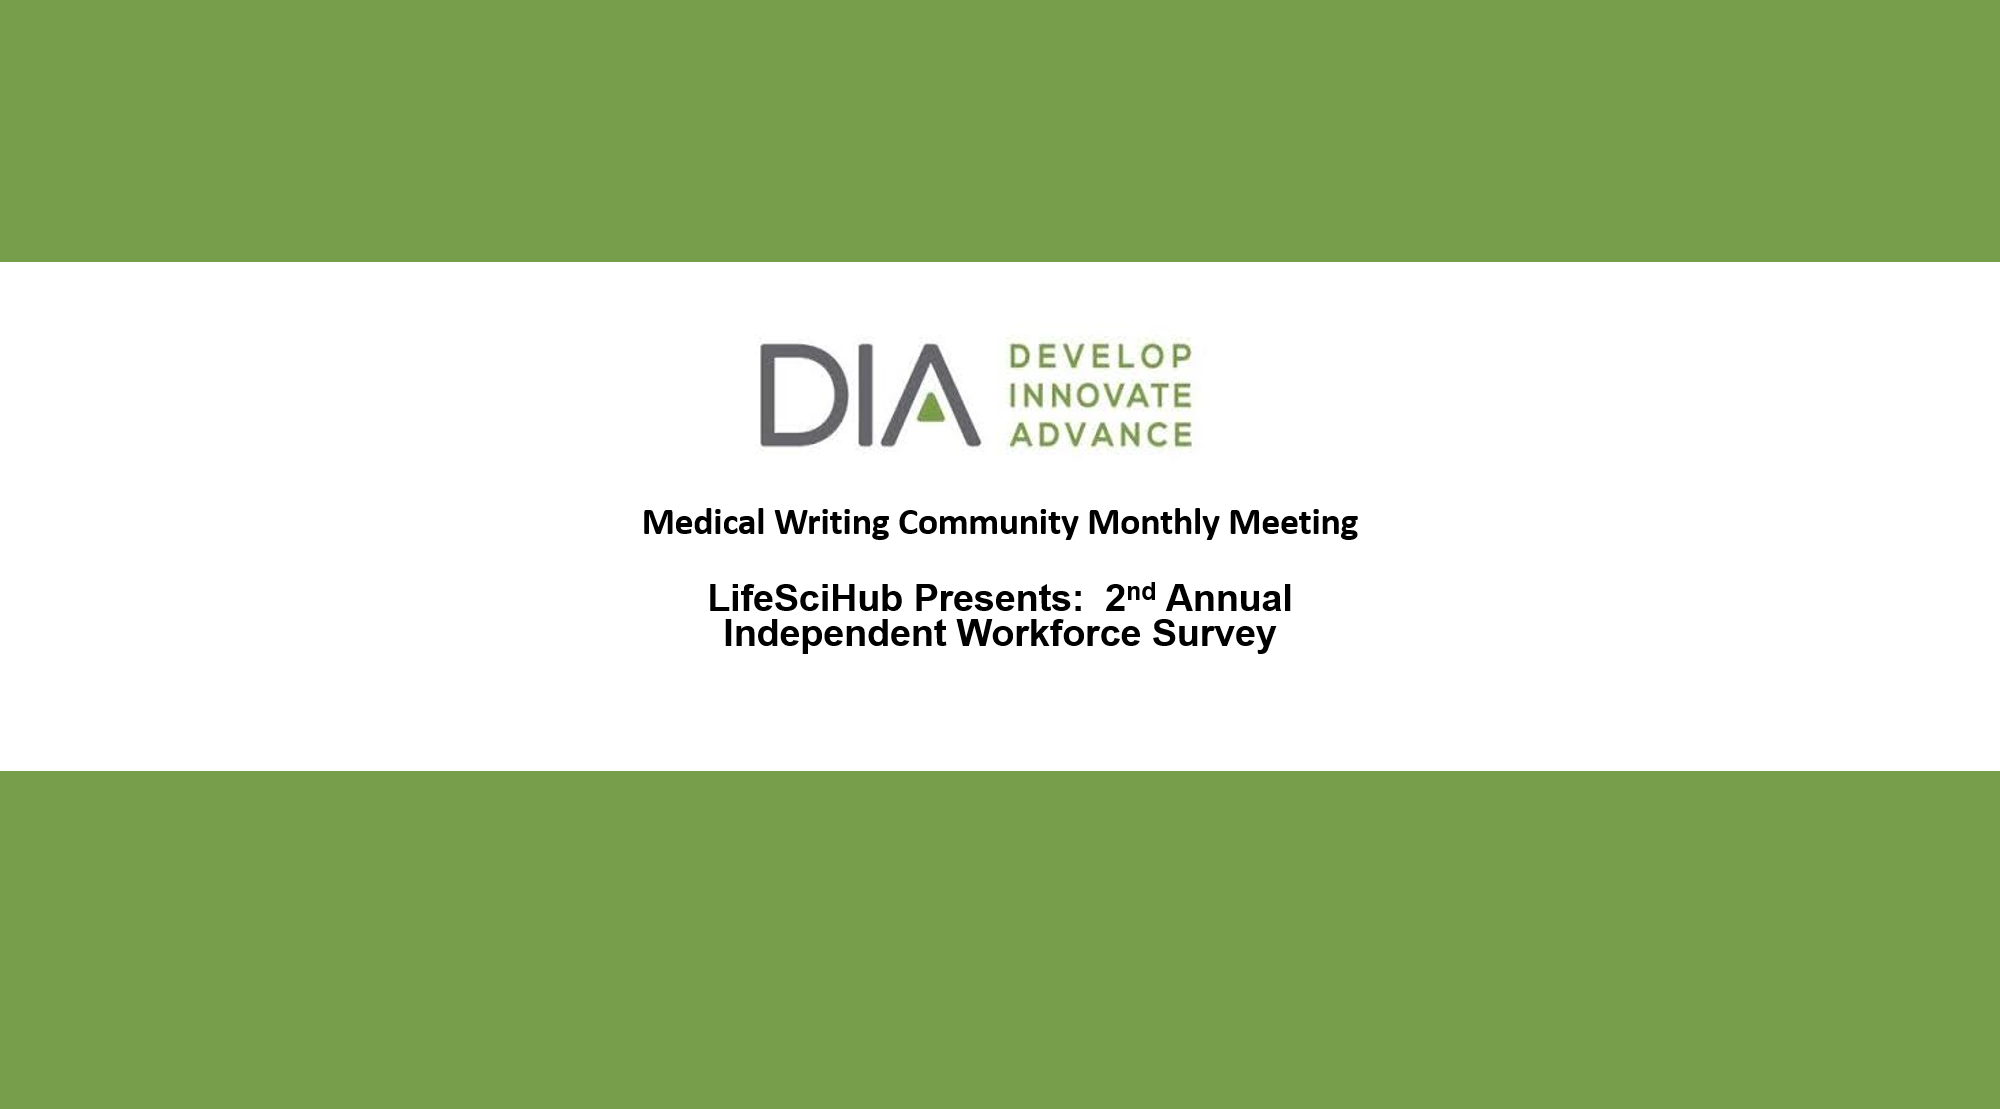 LifeSciHub Presents to DIA Medical Writing Community:  Life Sciences Independent Workforce Survey Report 2020